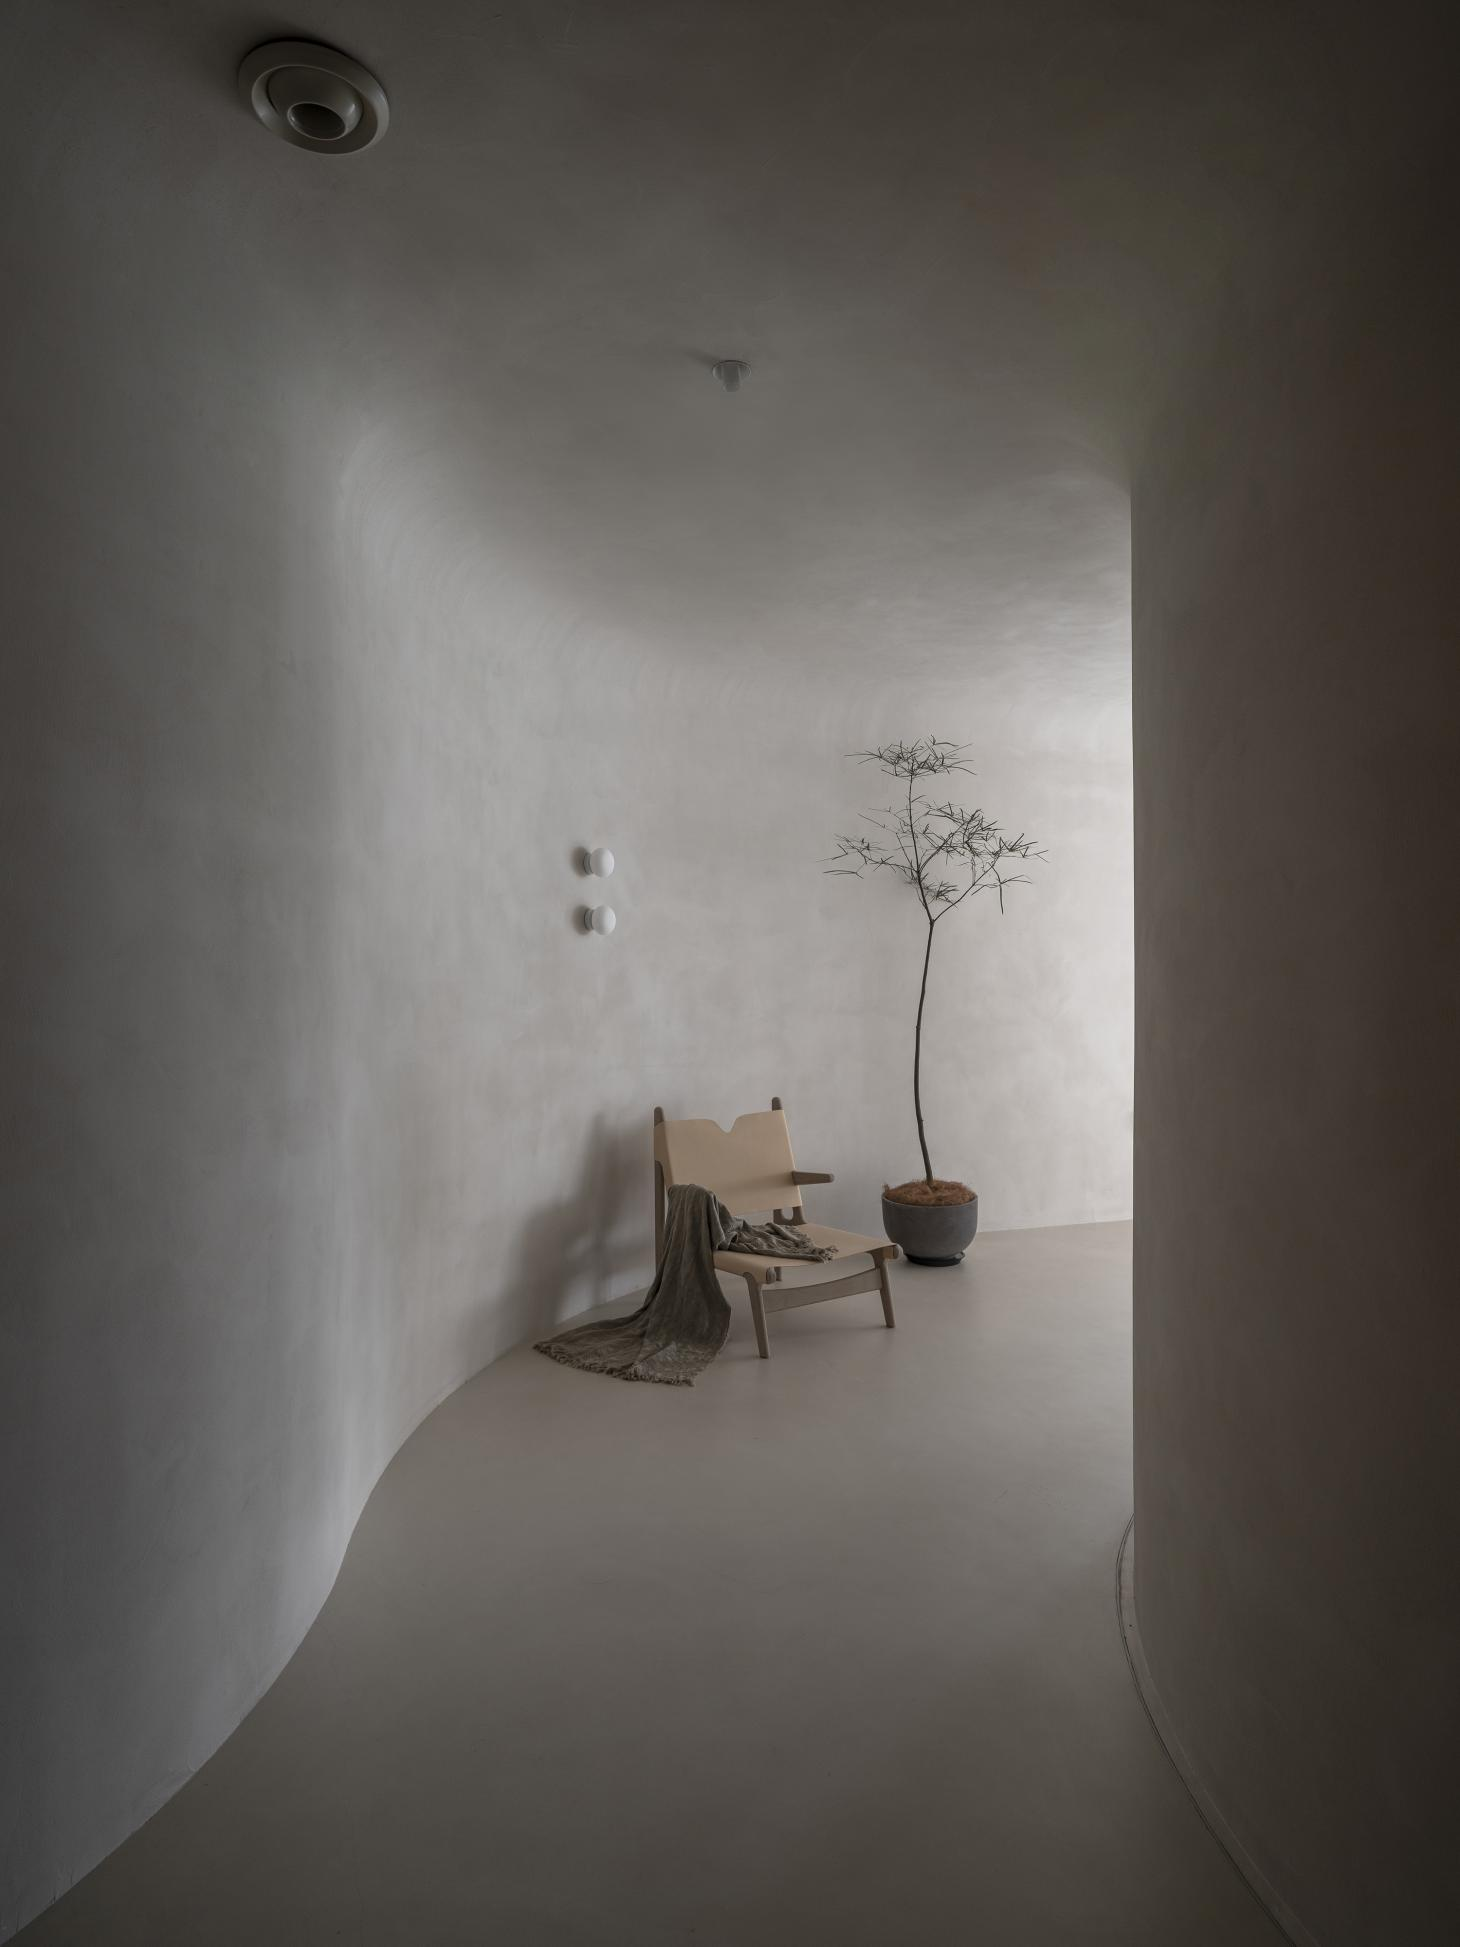 entrance of Soul Realm Spa House in Hangzhou, China with white curving walls